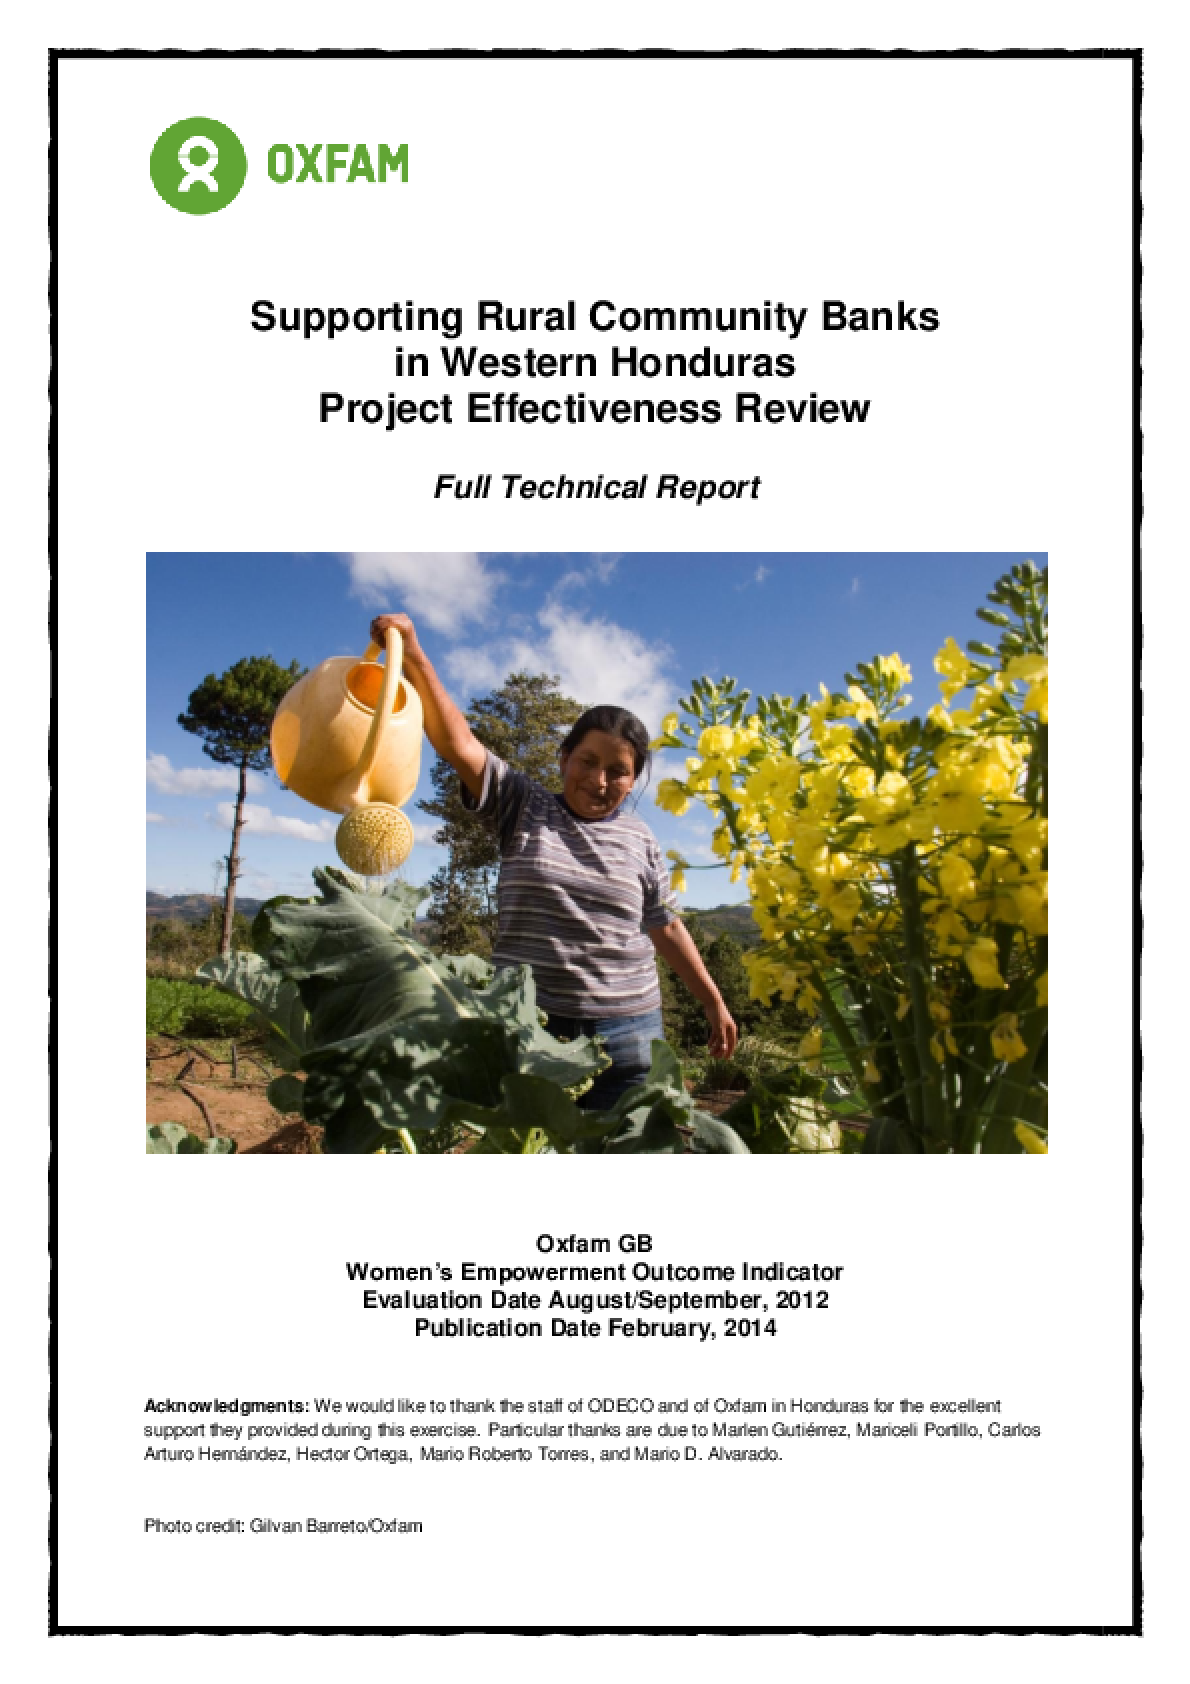 Effectiveness Review: Supporting Rural Community Banks, Honduras